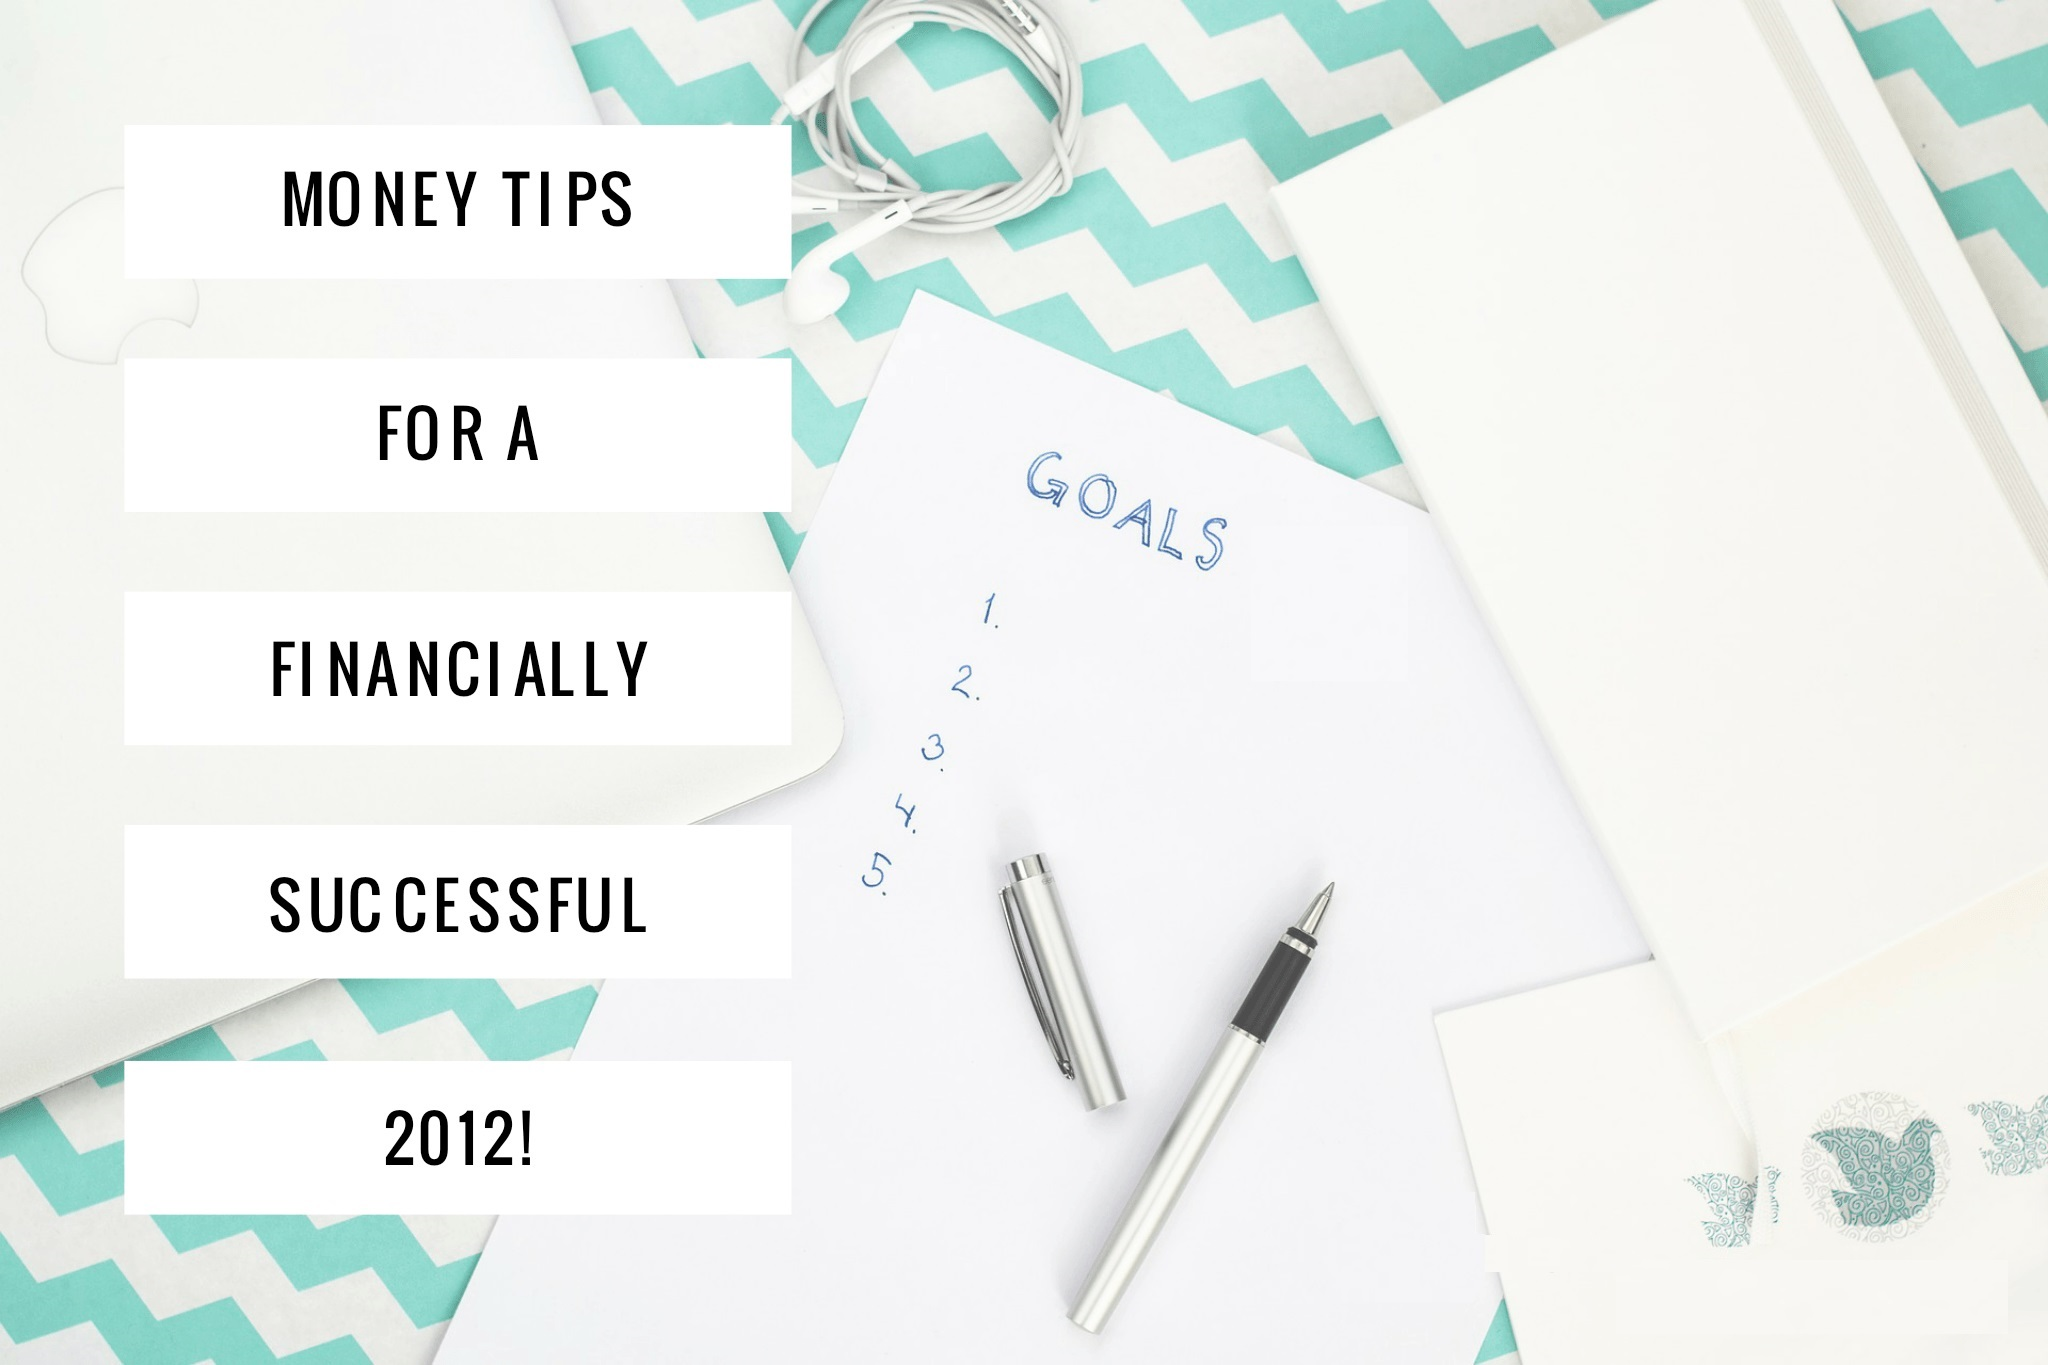 Tips for Financially Successful